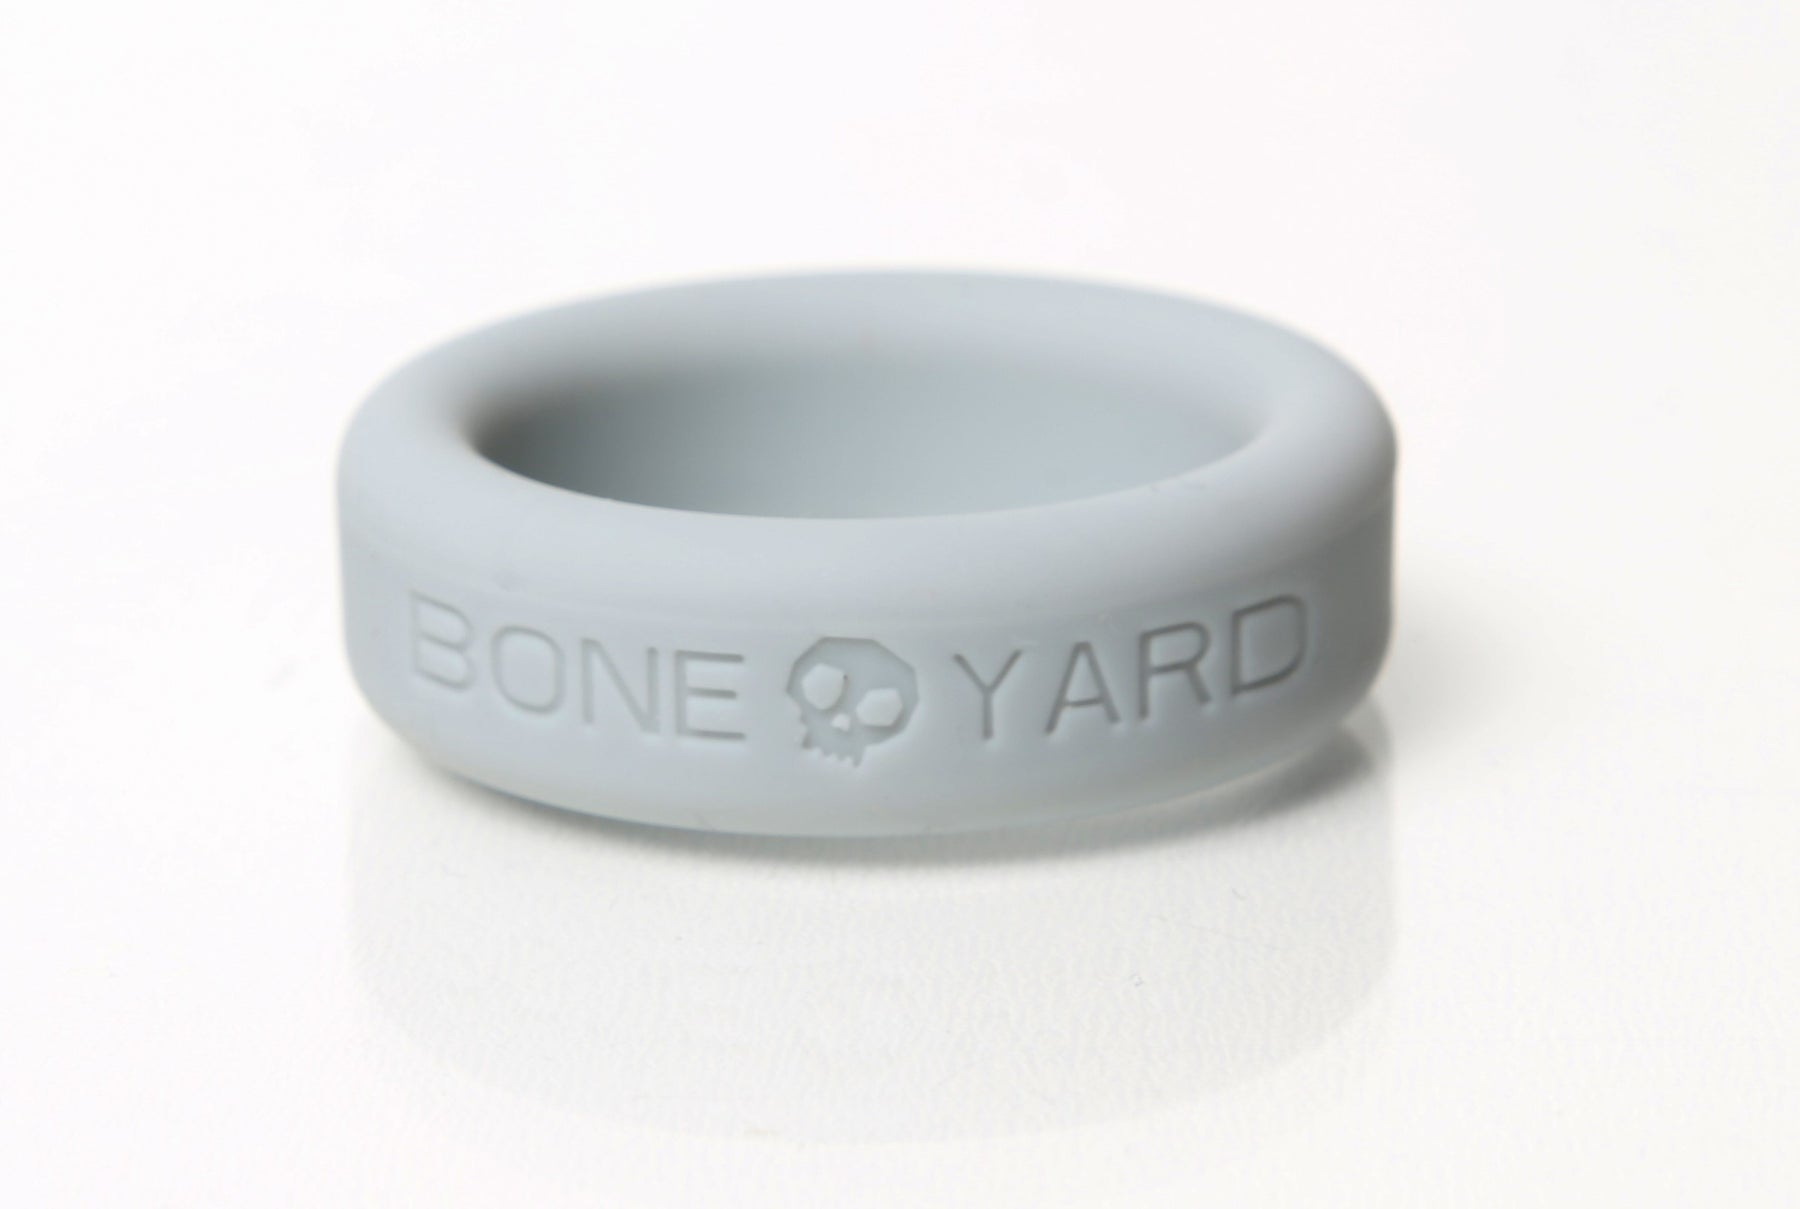 Boneyard Silicone Ring 30mm - Gray BY-0230